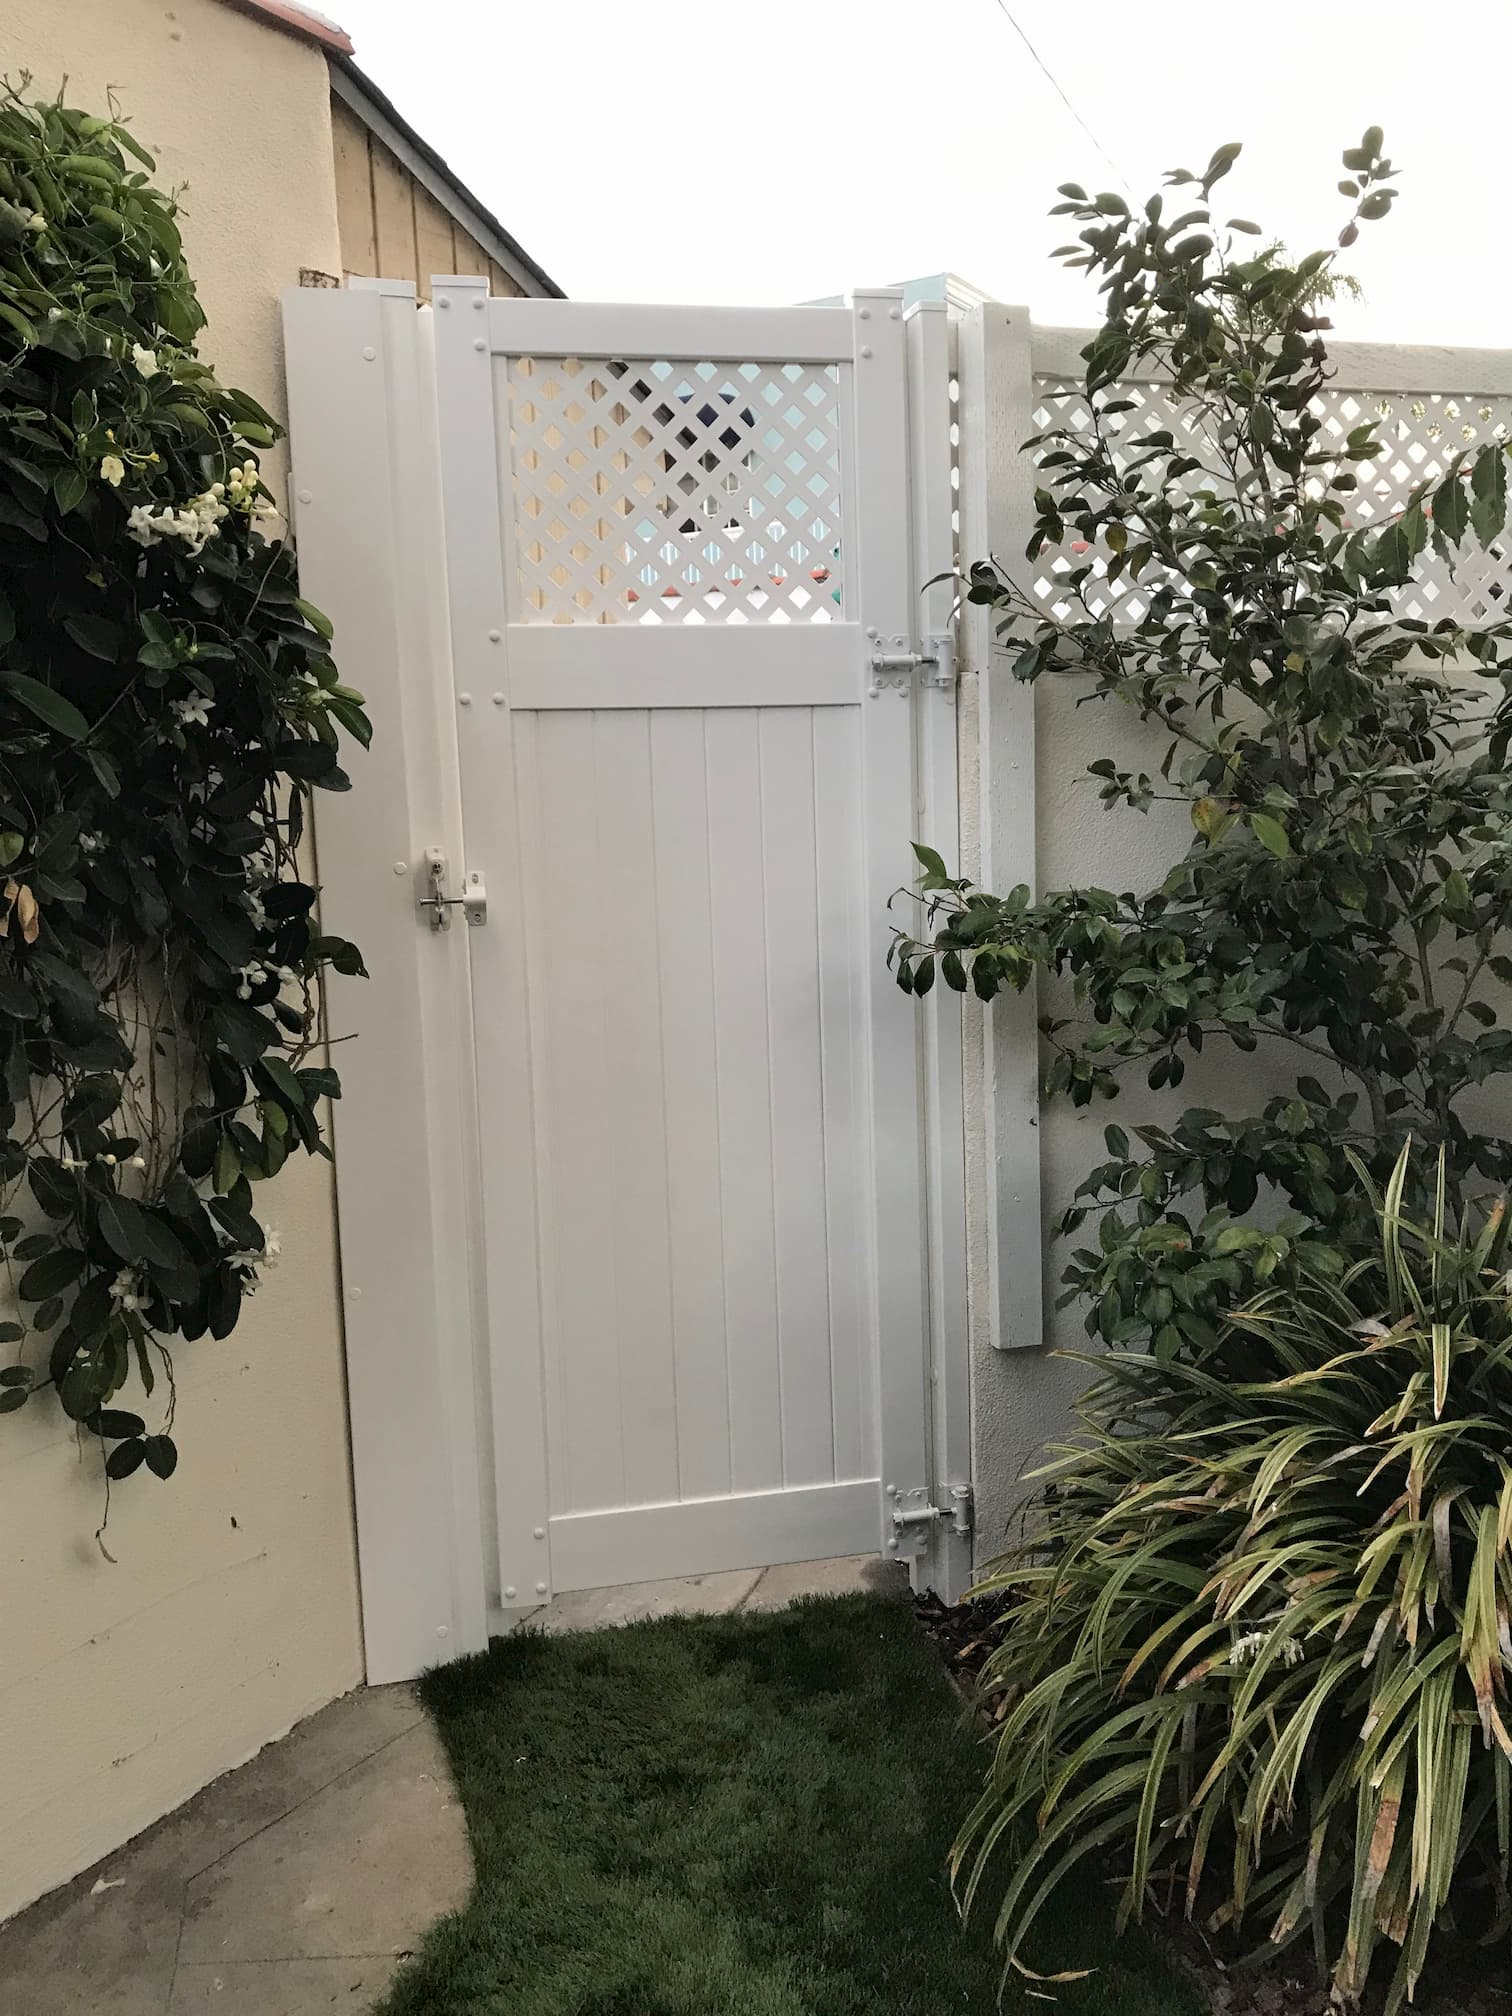 Vinyl Semi-Privacy Gate Los Angeles